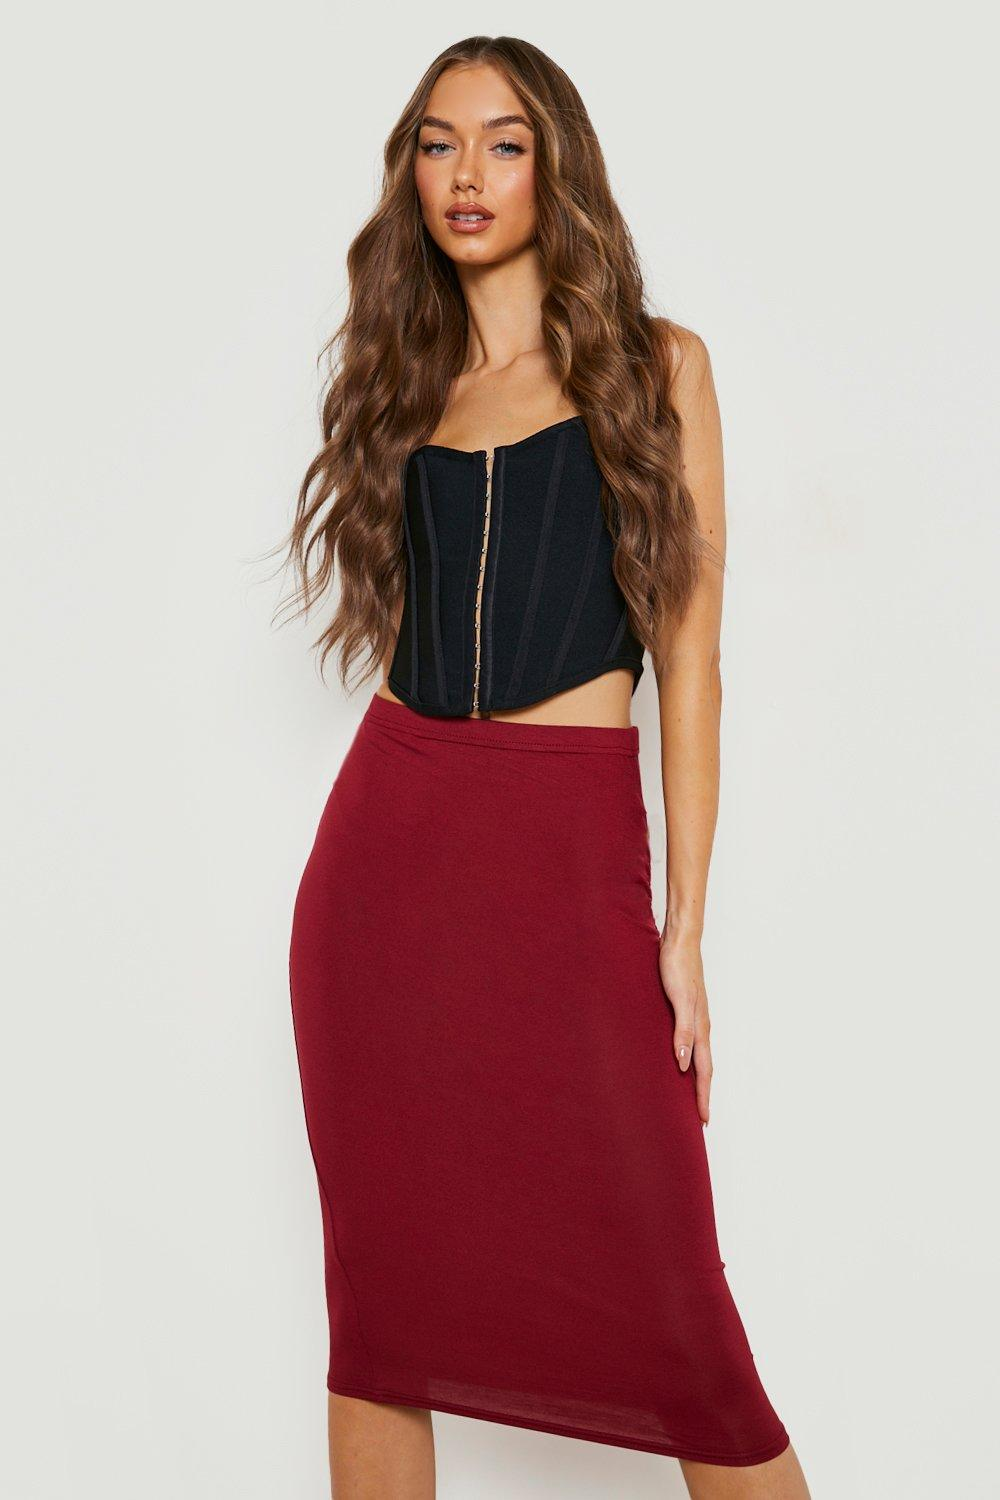 afadc17c2b5 Basic Midi Jersey Tube Skirt. Hover to zoom. Close video